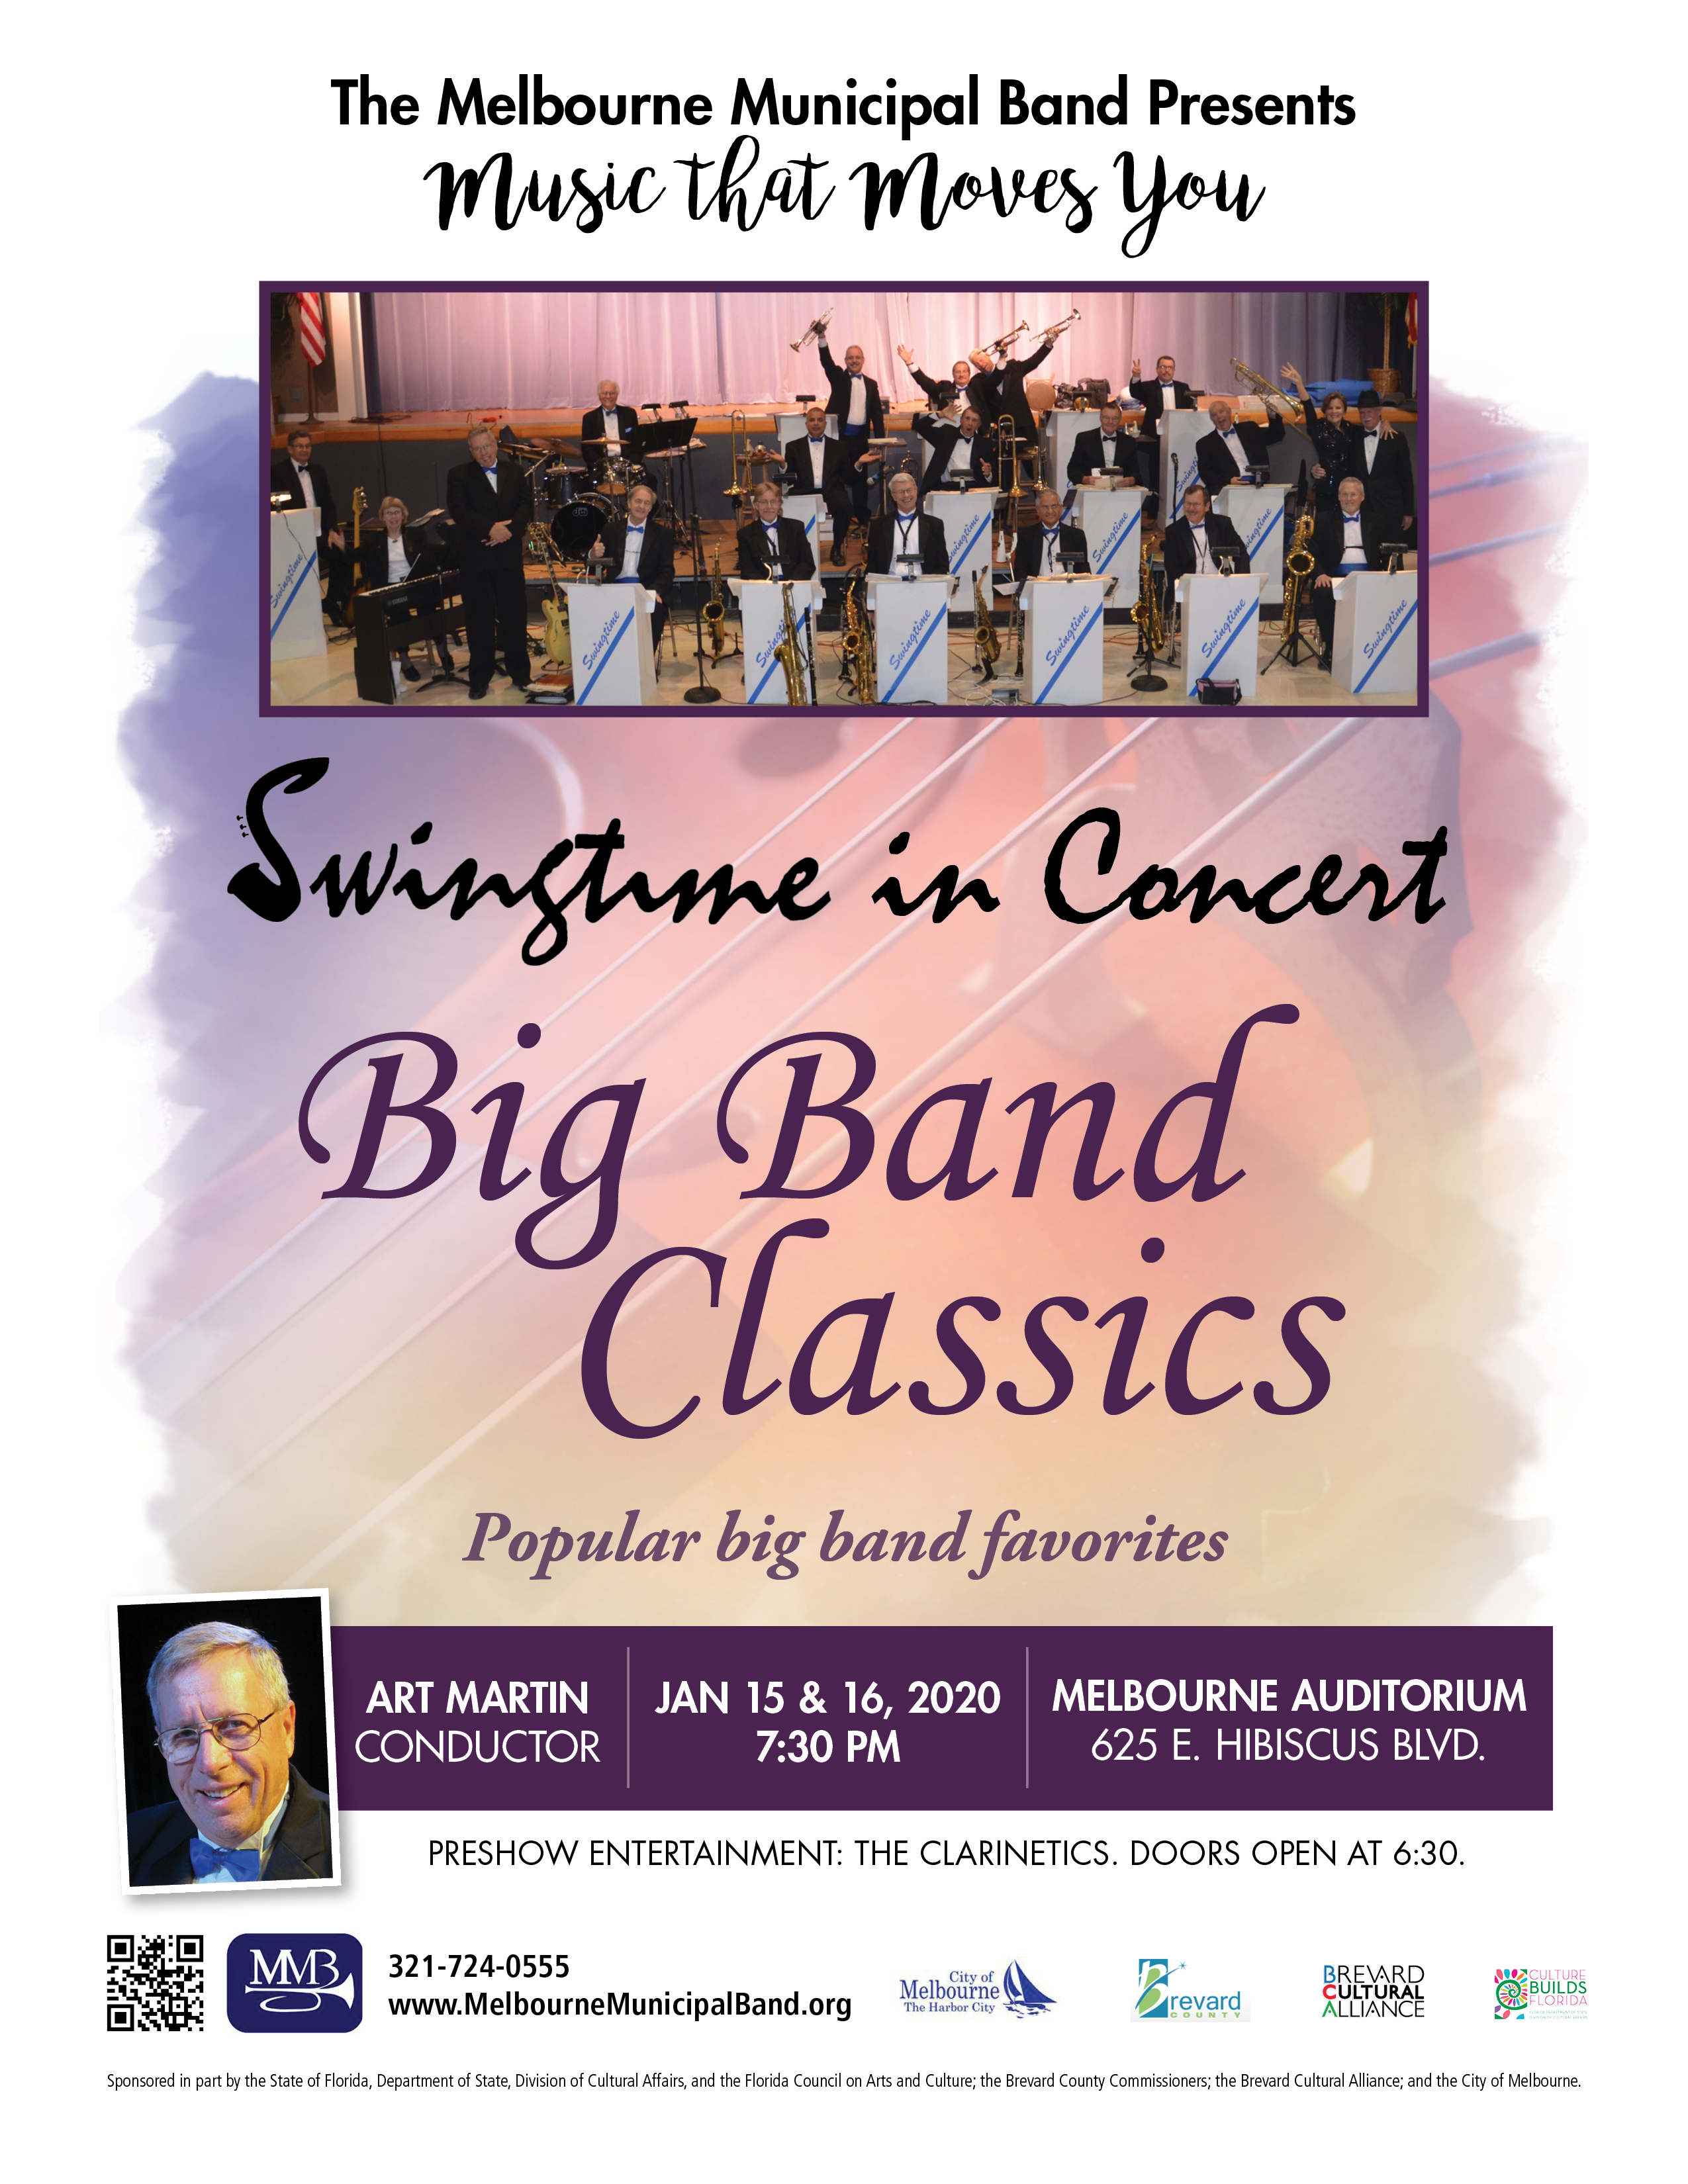 Big Band Classics presented by The Melbourne Municipal Band